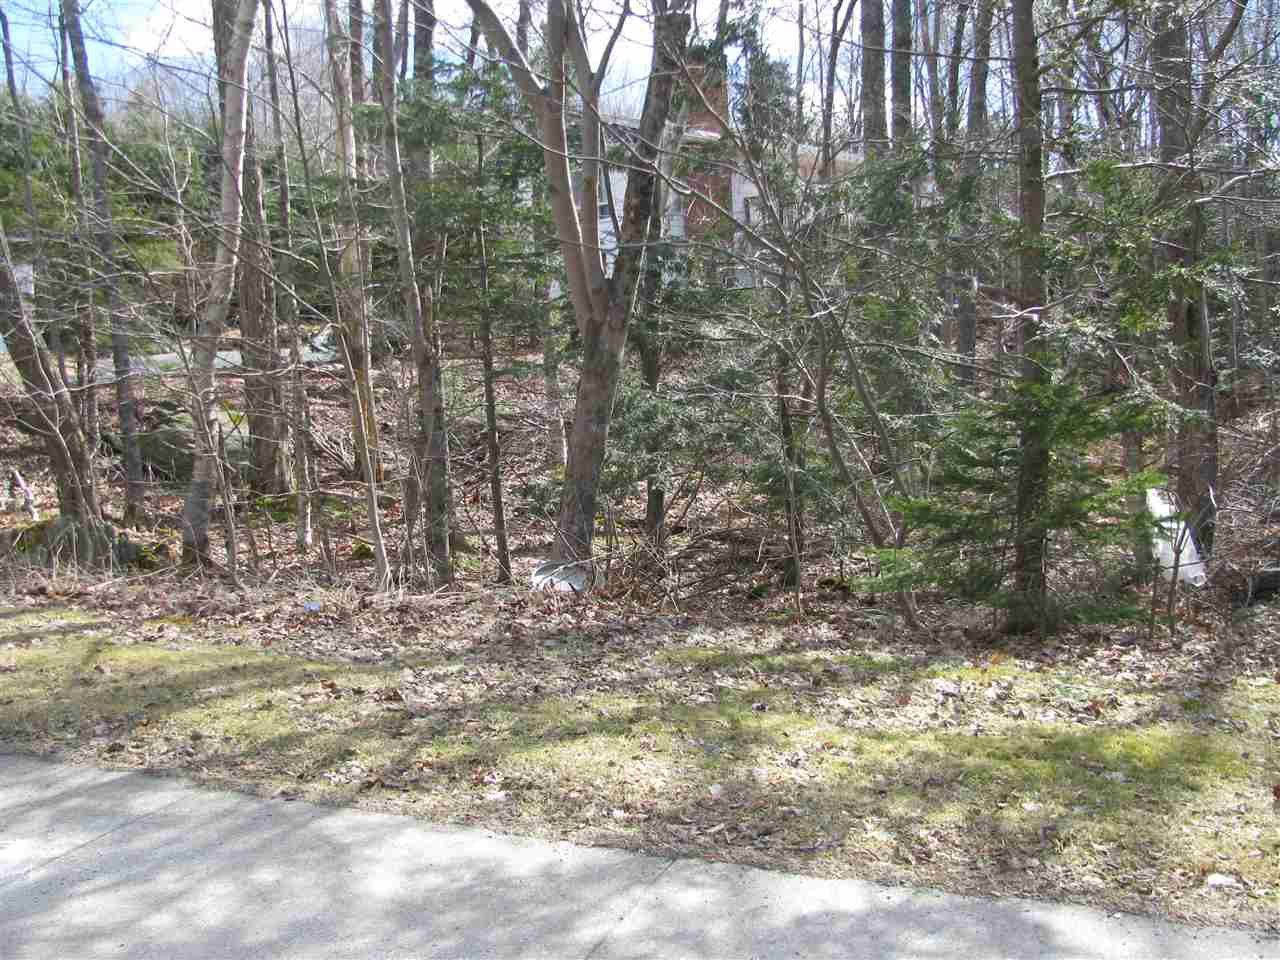 Main Photo: 793 Waverley Road in Waverley: 14-Dartmouth Montebello, Port Wallis, Keystone Vacant Land for sale (Halifax-Dartmouth)  : MLS®# 202007780